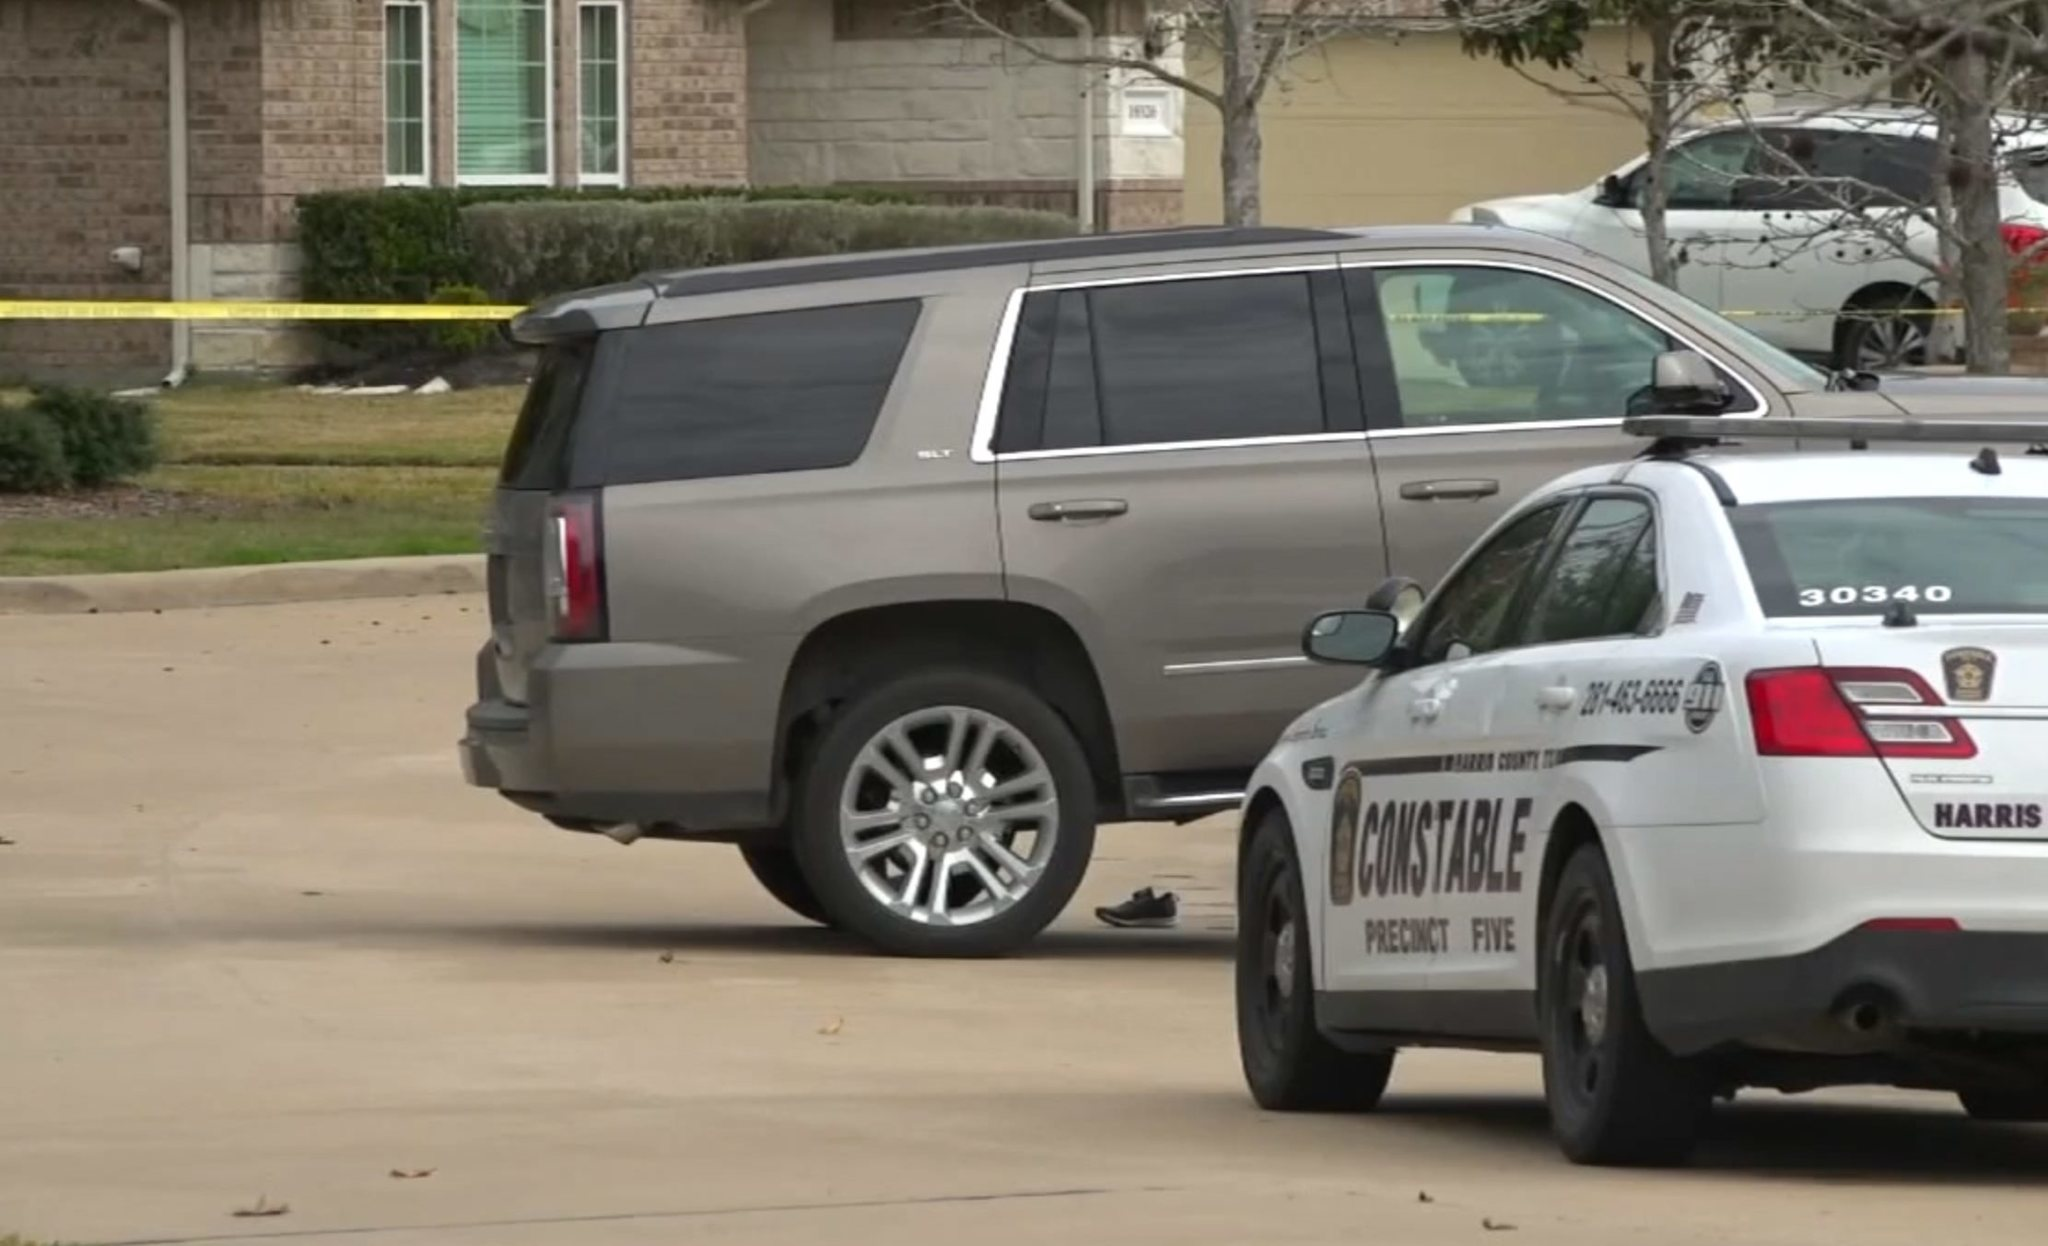 3-year-old girl run over, killed in driveway after mom accidentally leaves SUV in neutral